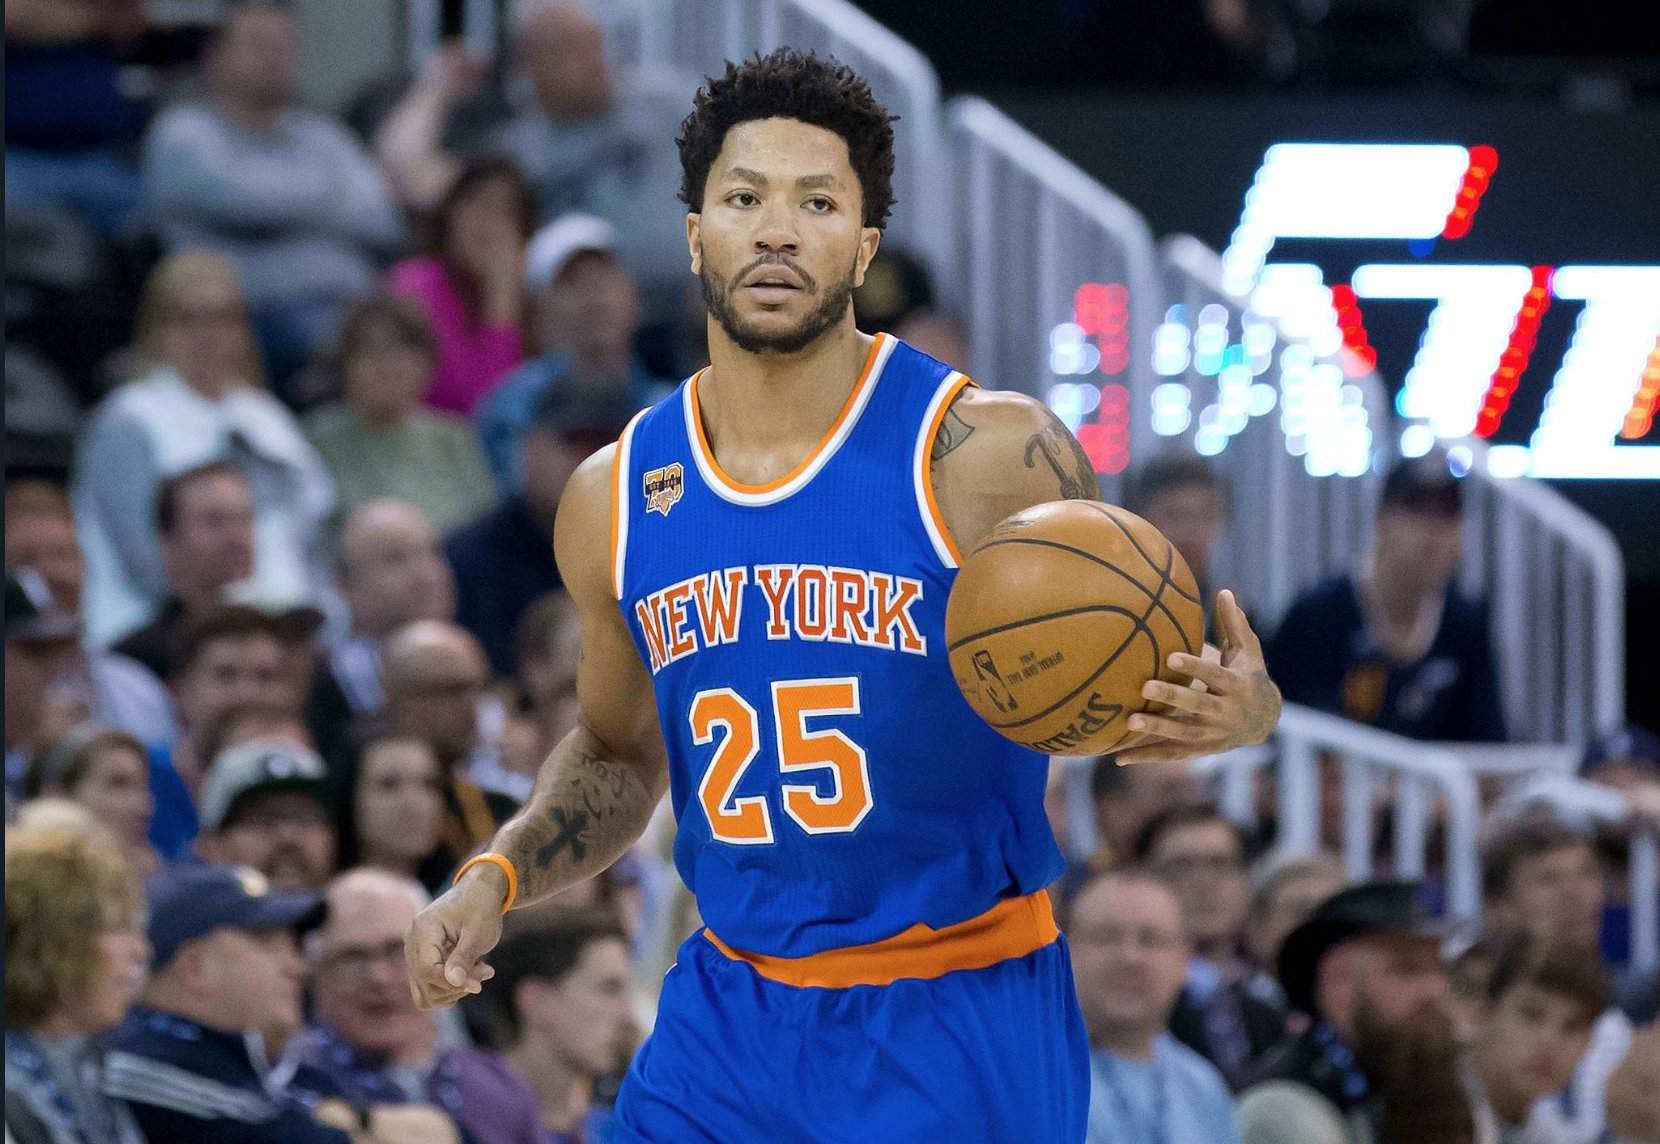 ad9389b2af13 Derrick Rose To Meet With Clippers Tomorrow - CaliSports News